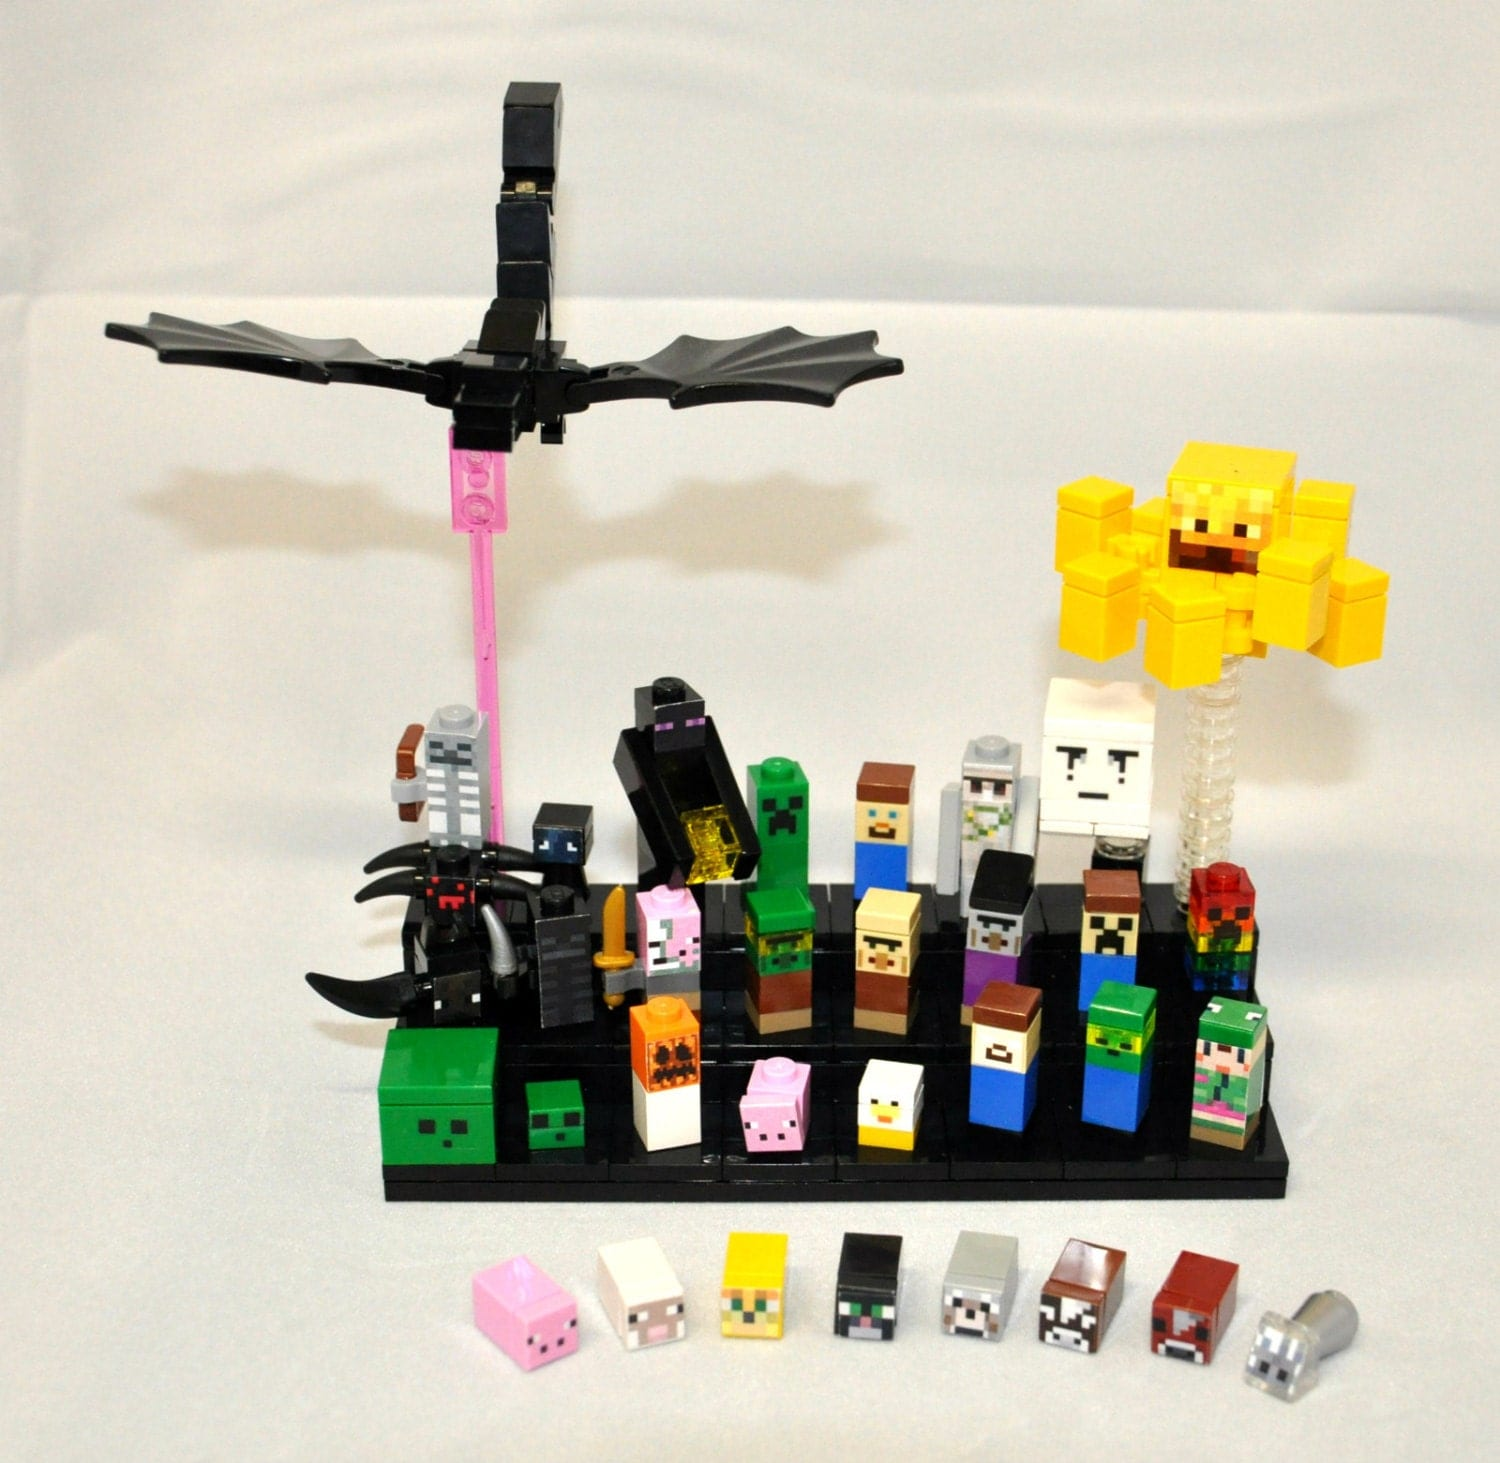 Minecraft Toys And Mini Figures For Kids : Minecraft inspired custom mini mob minifigures super lot